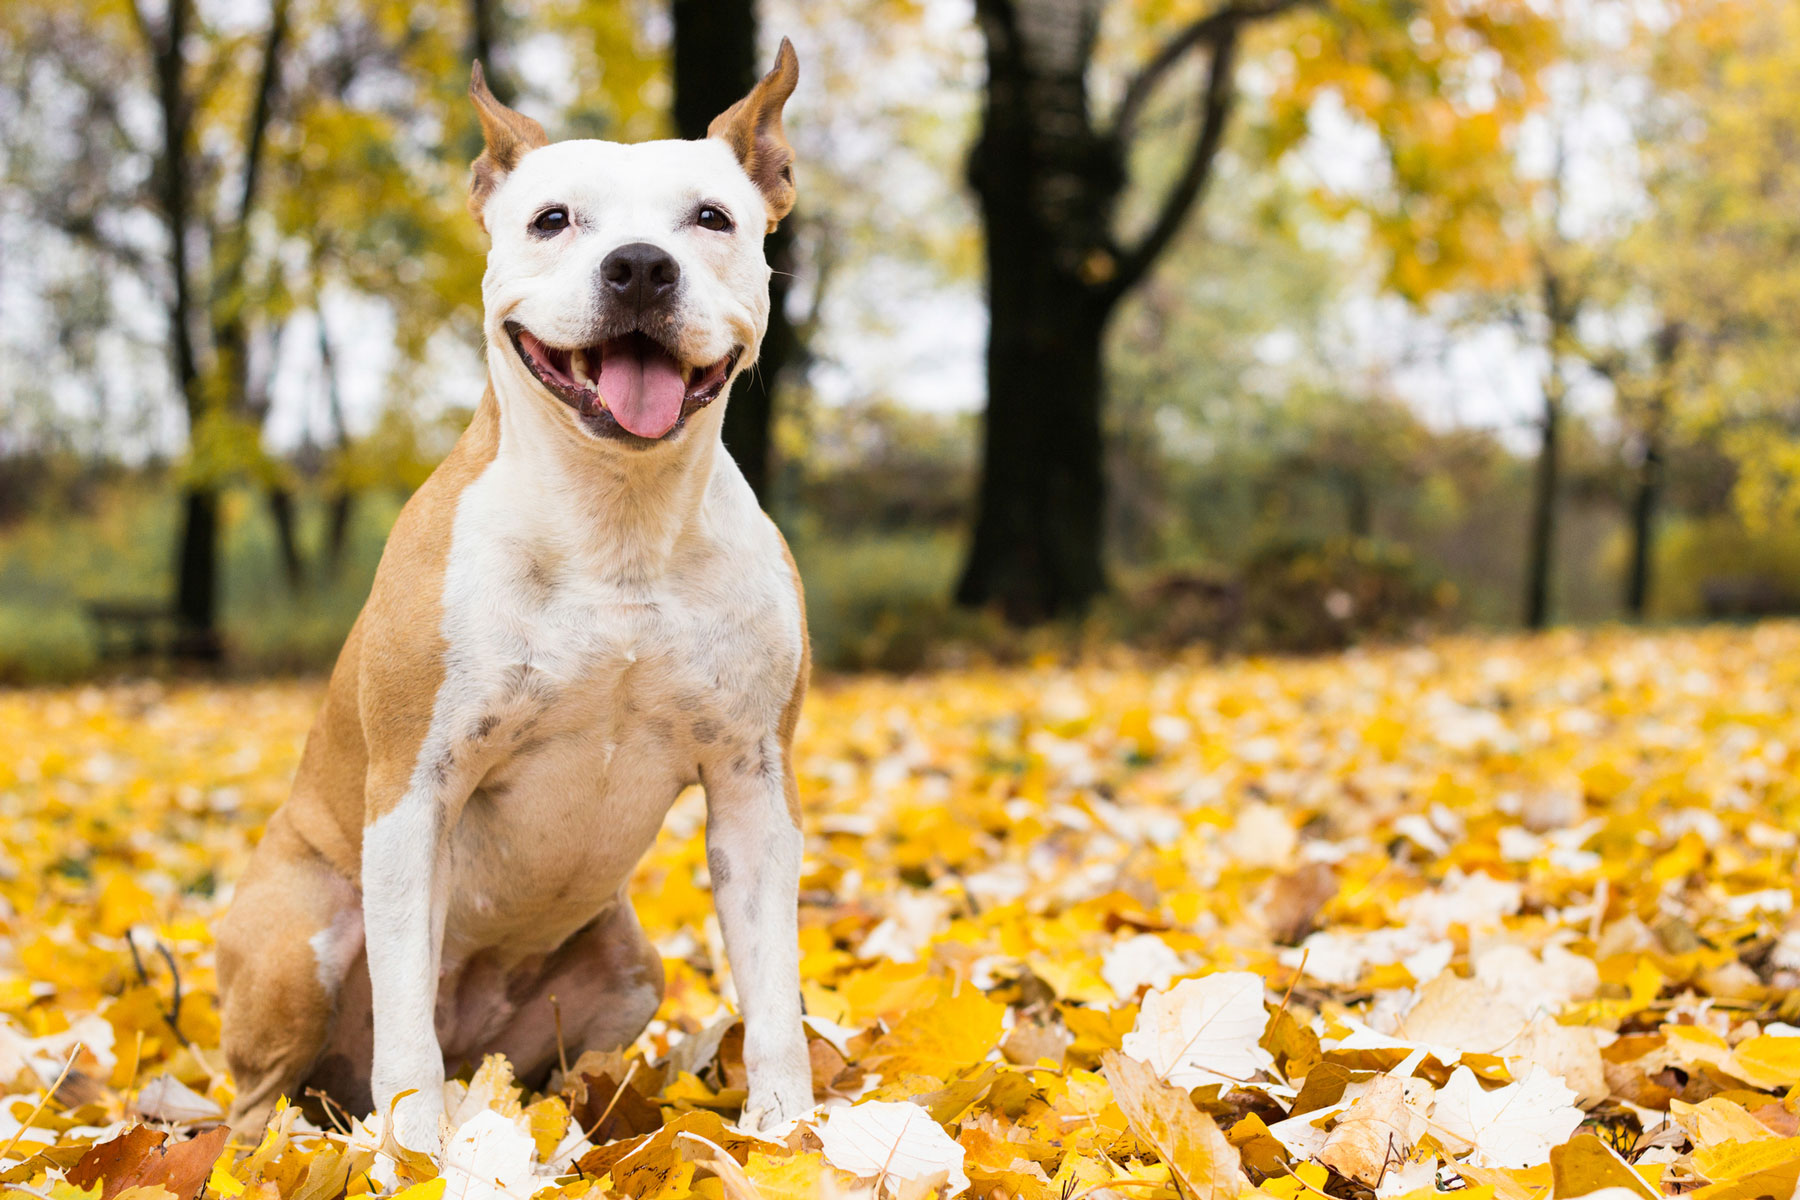 Pit Bull-Type Dogs: February Arthritis Risk Spotlight